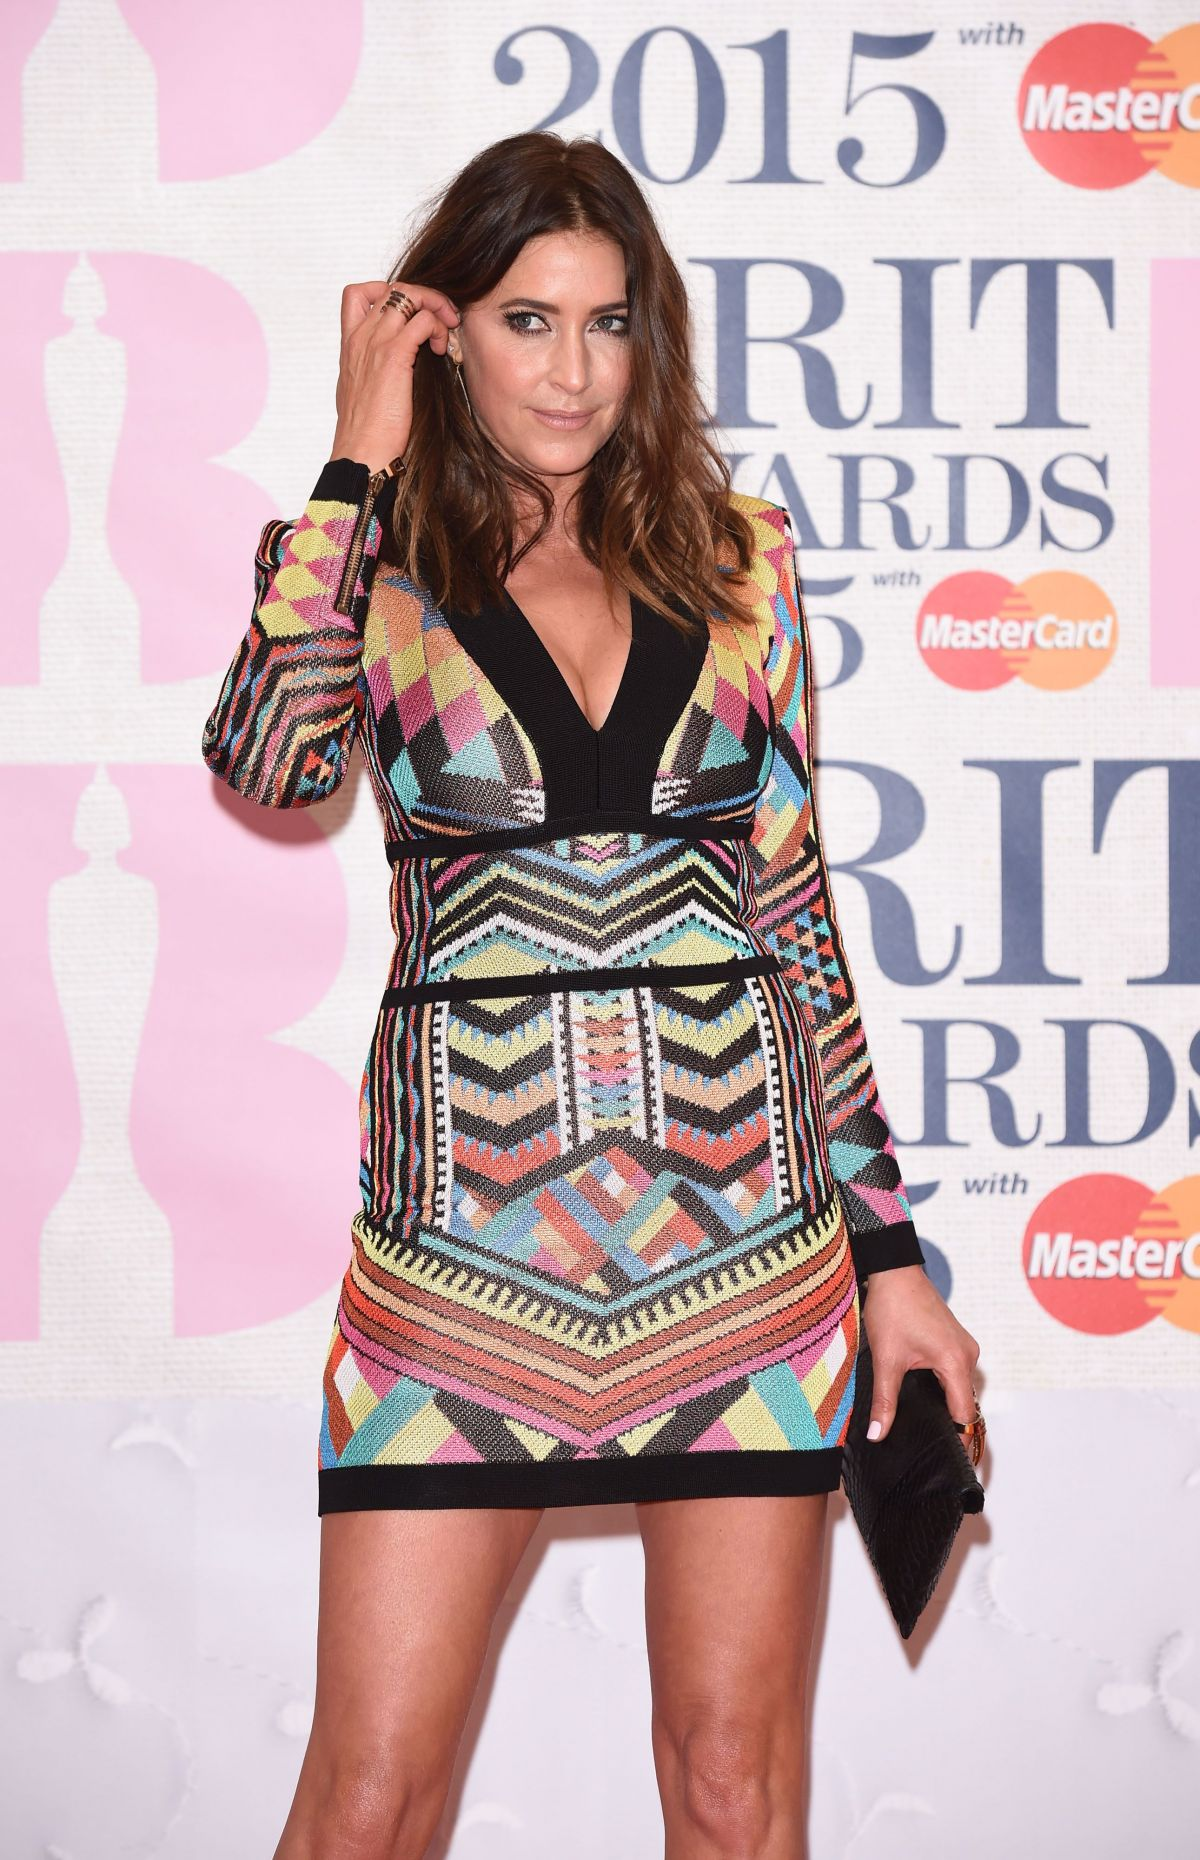 LISA SNOWDON at 2015 Brit Awards in London